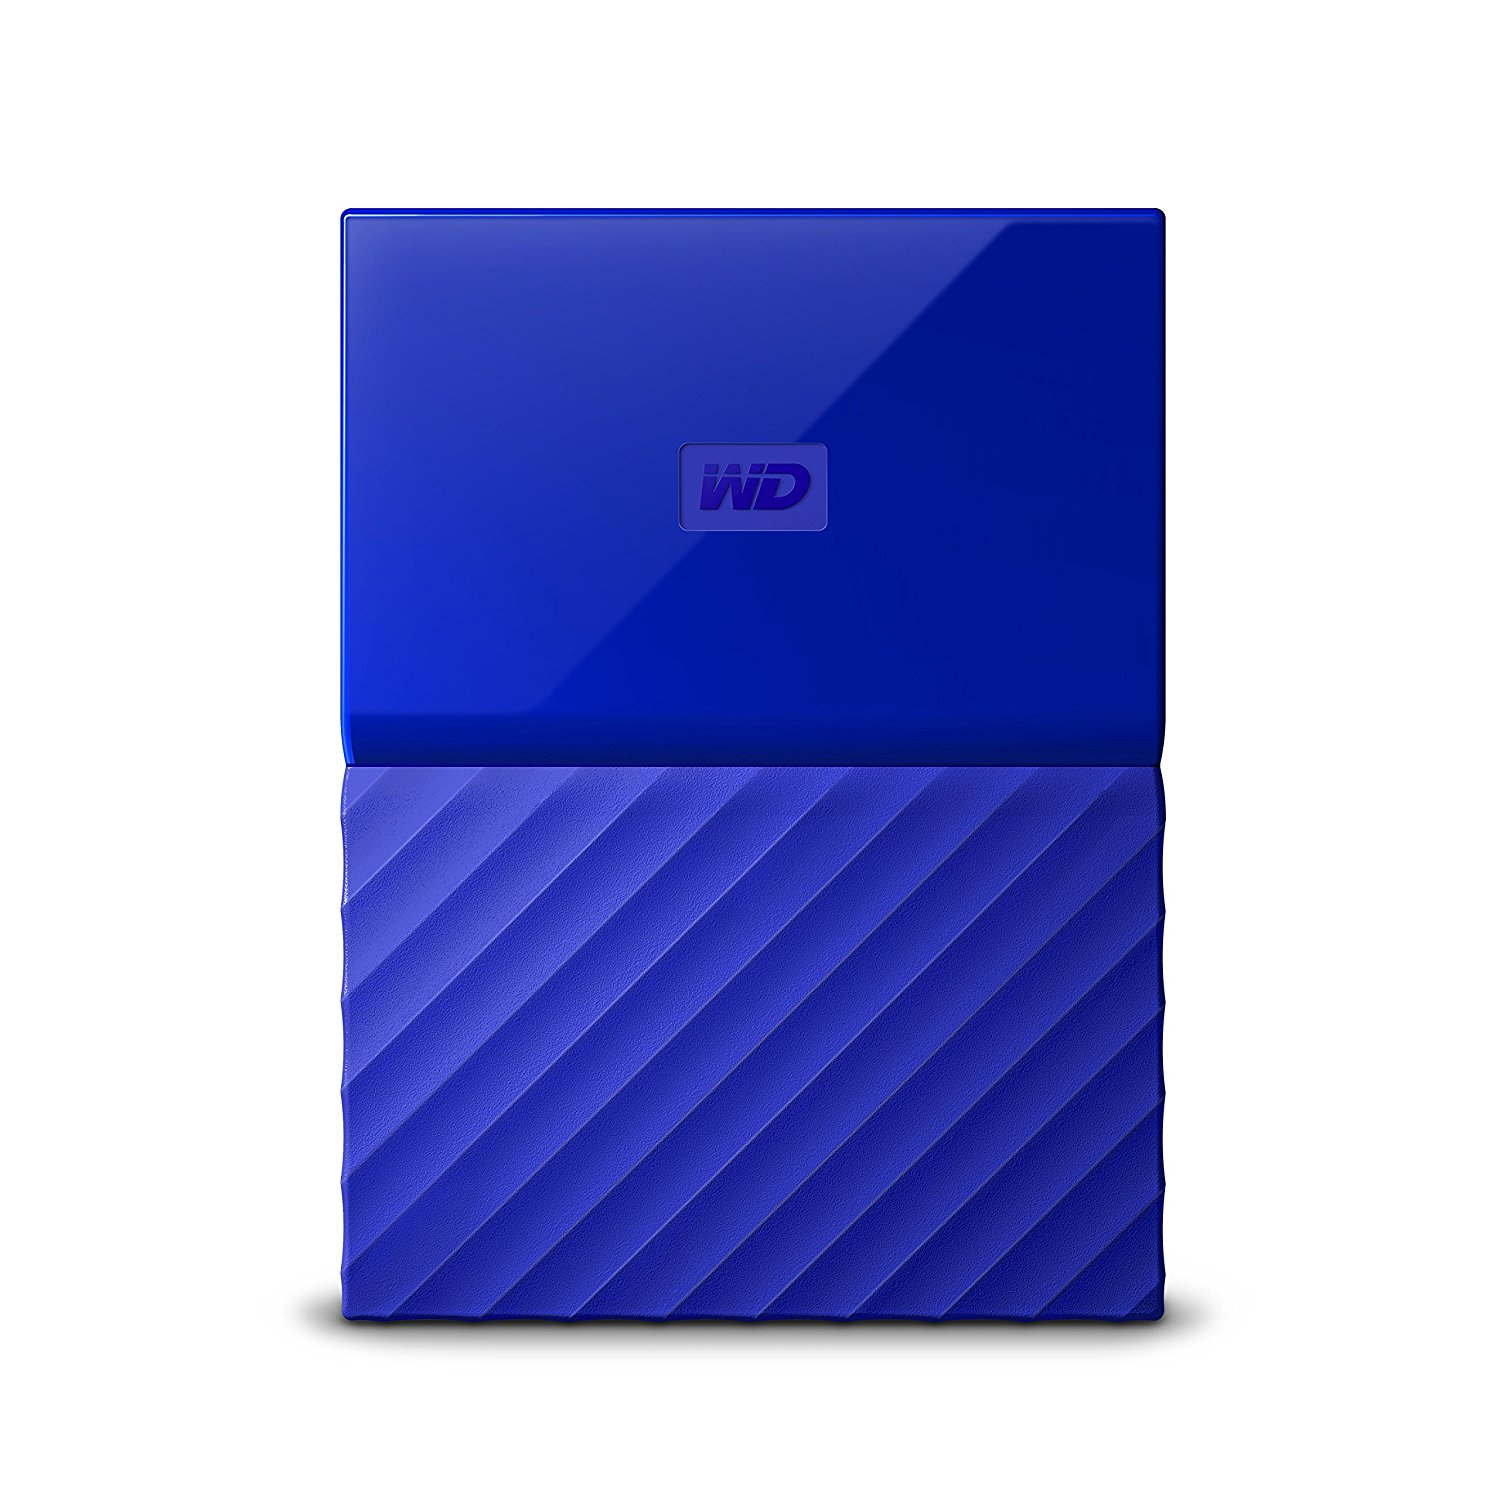 Western Digital My Passport 2TB Blue External Hard Drive